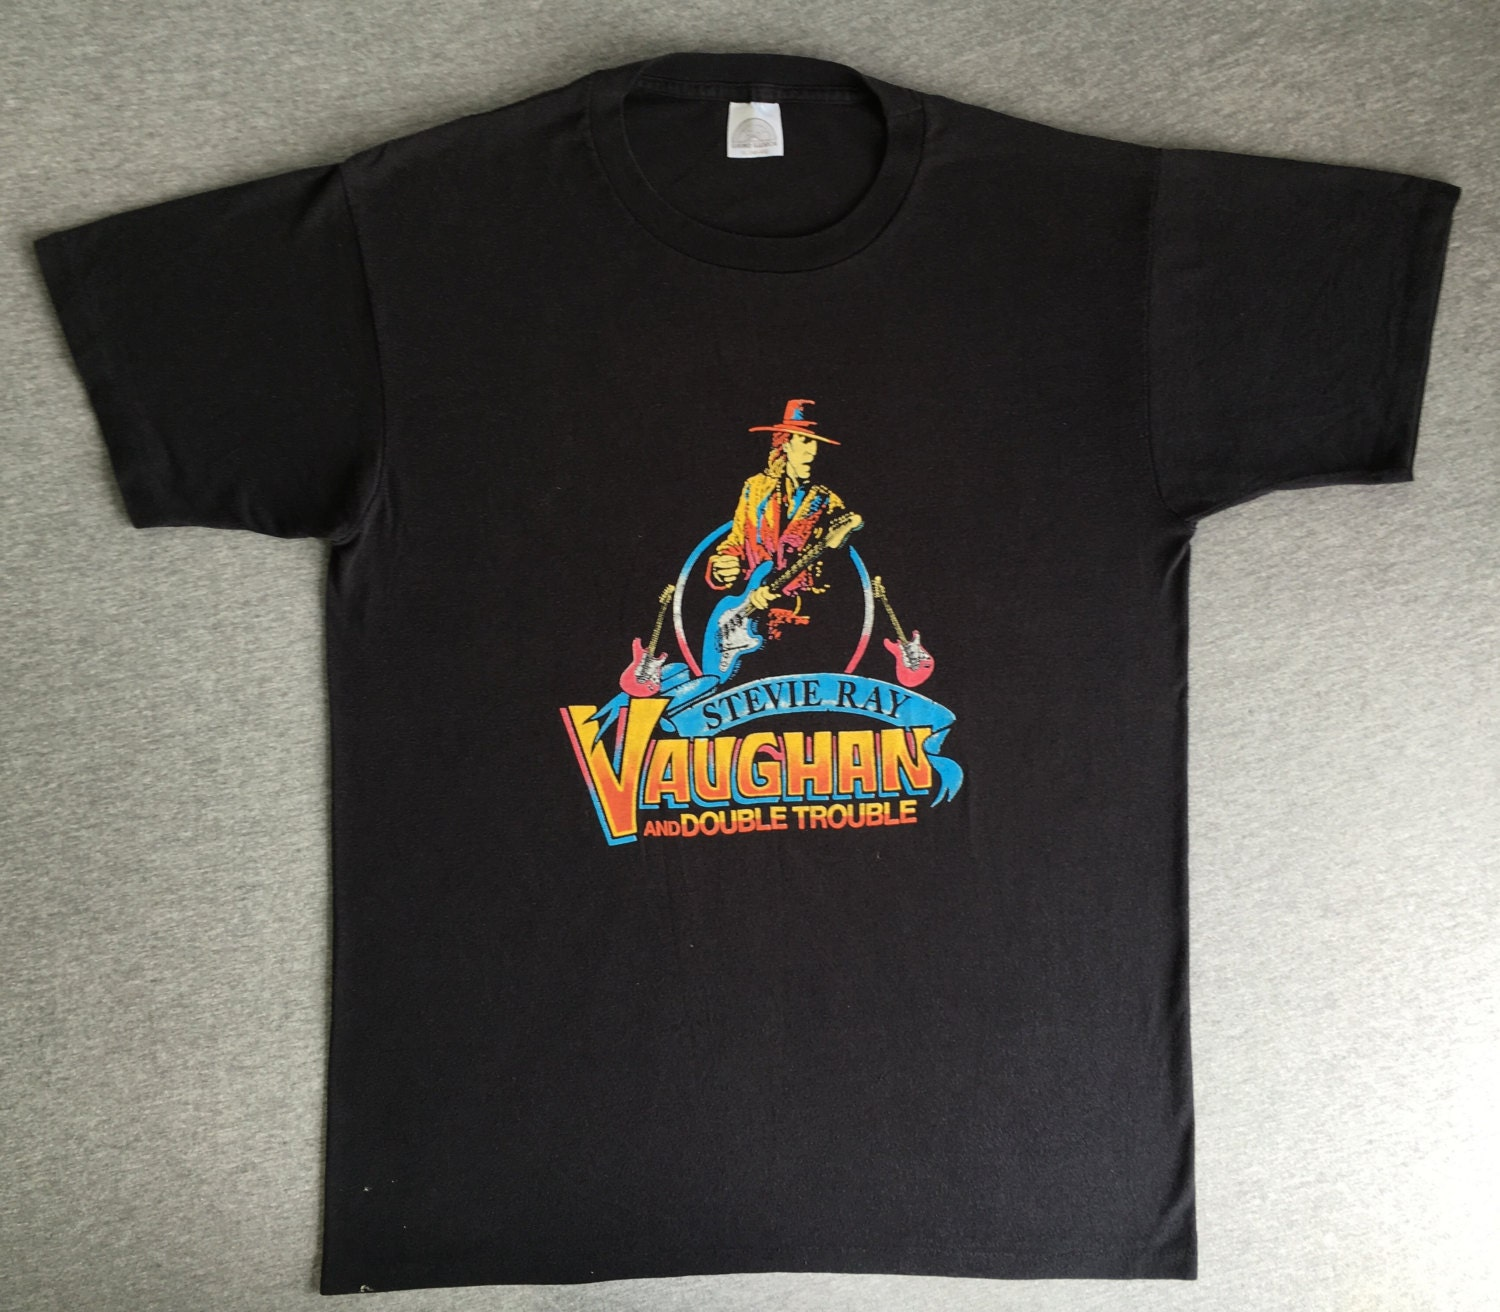 stevie ray vaughan shirt 1988 vintage   80 u0026 39 s double trouble